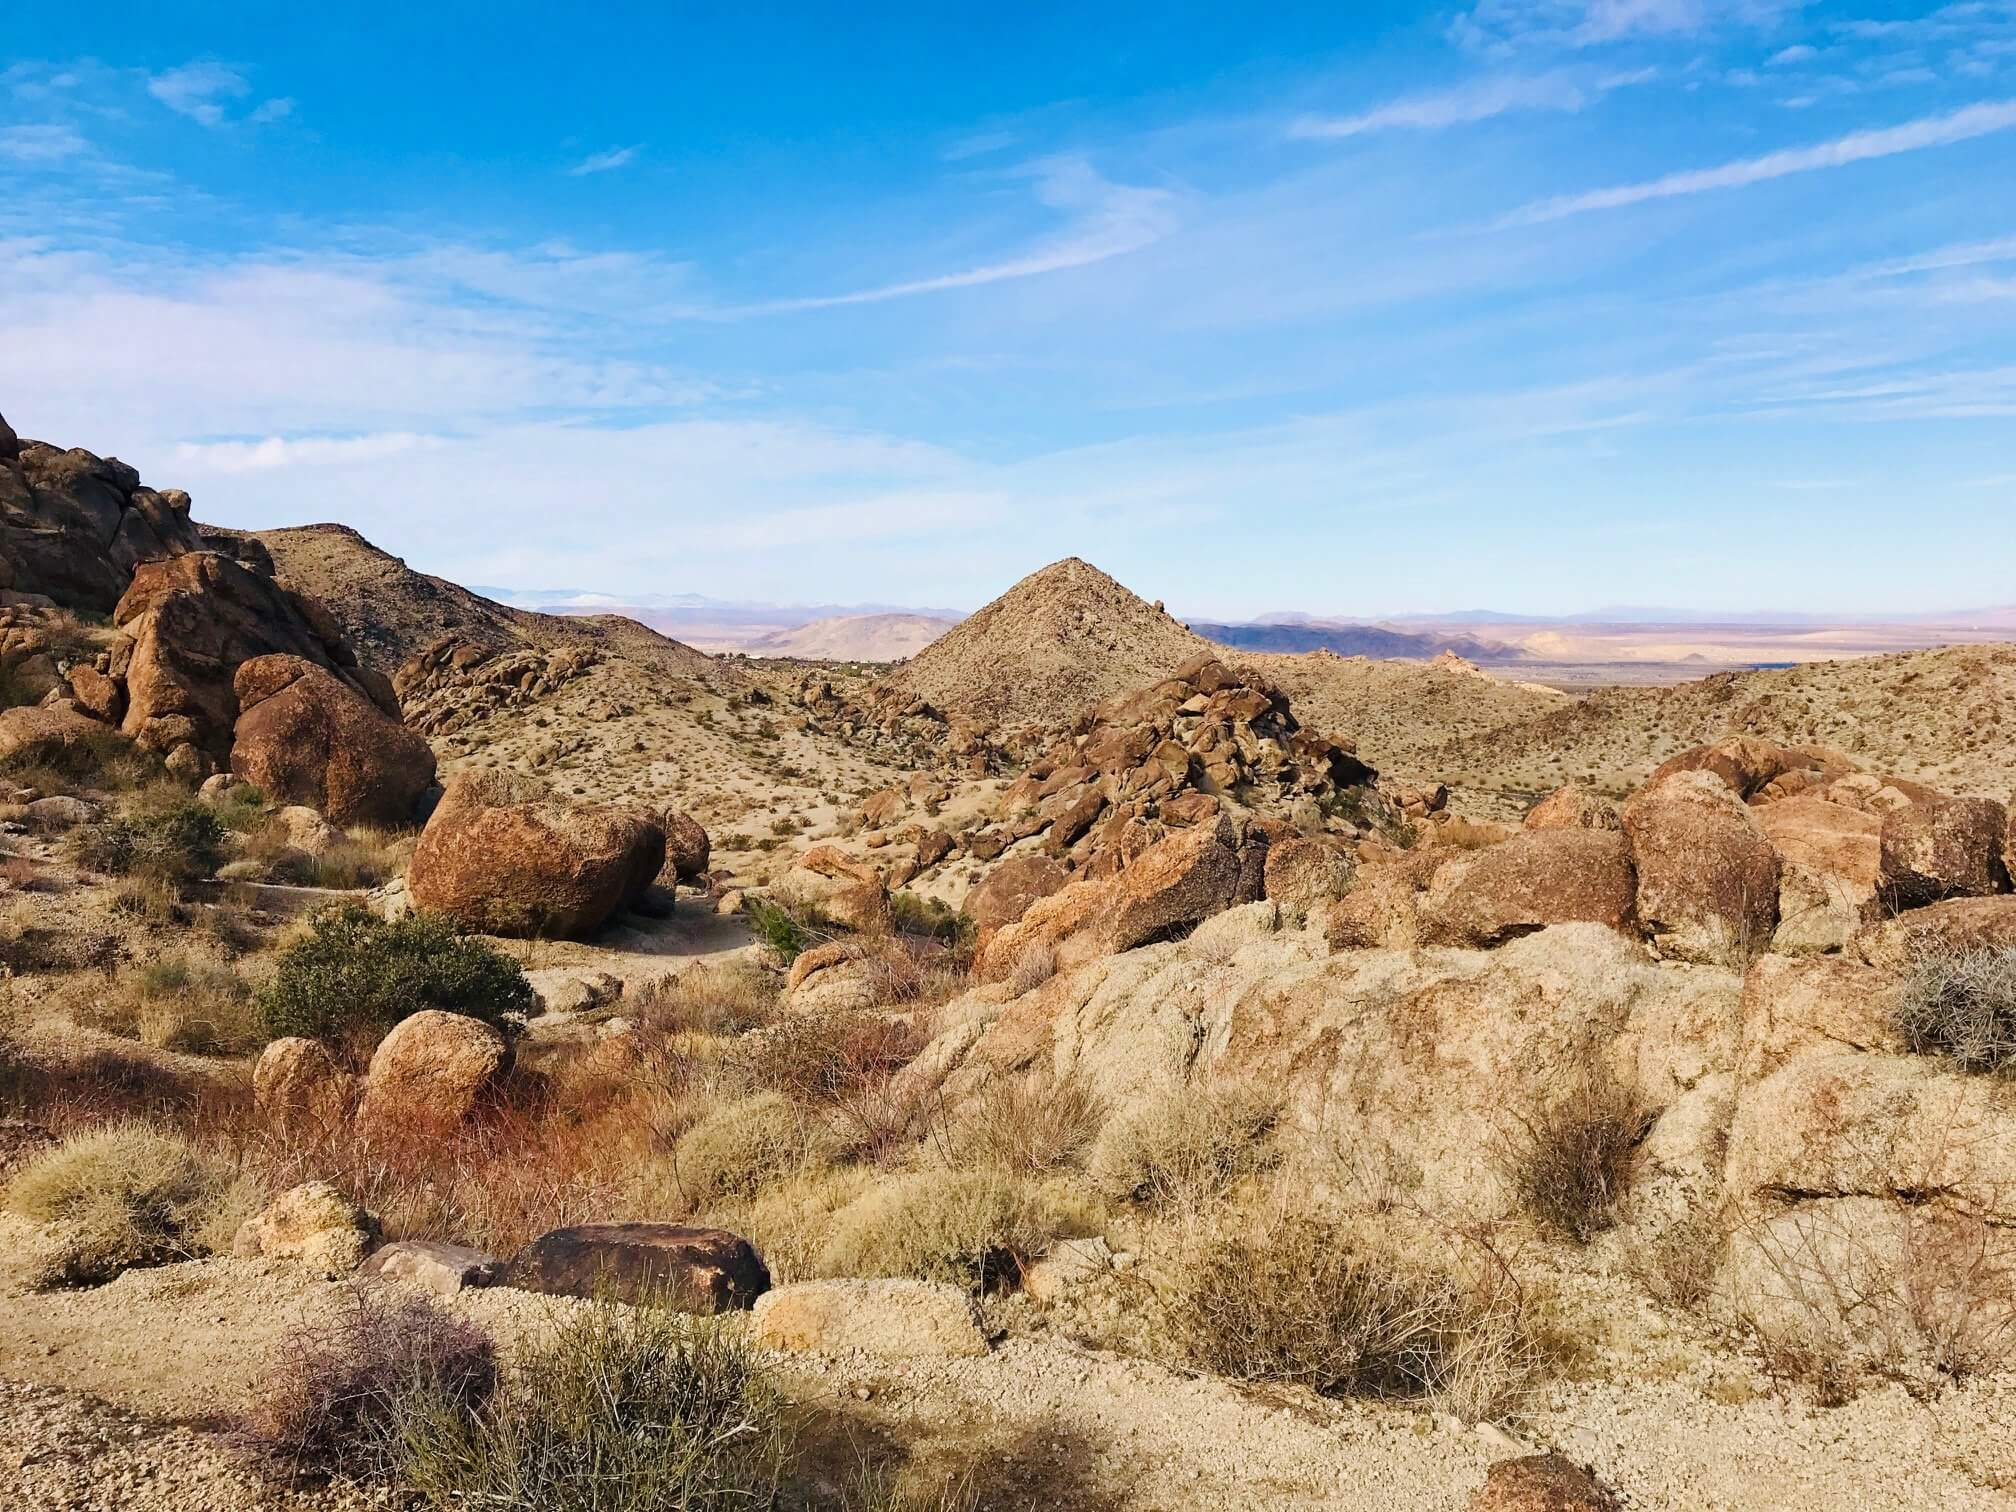 View along the 49 Palms Oasis Trail